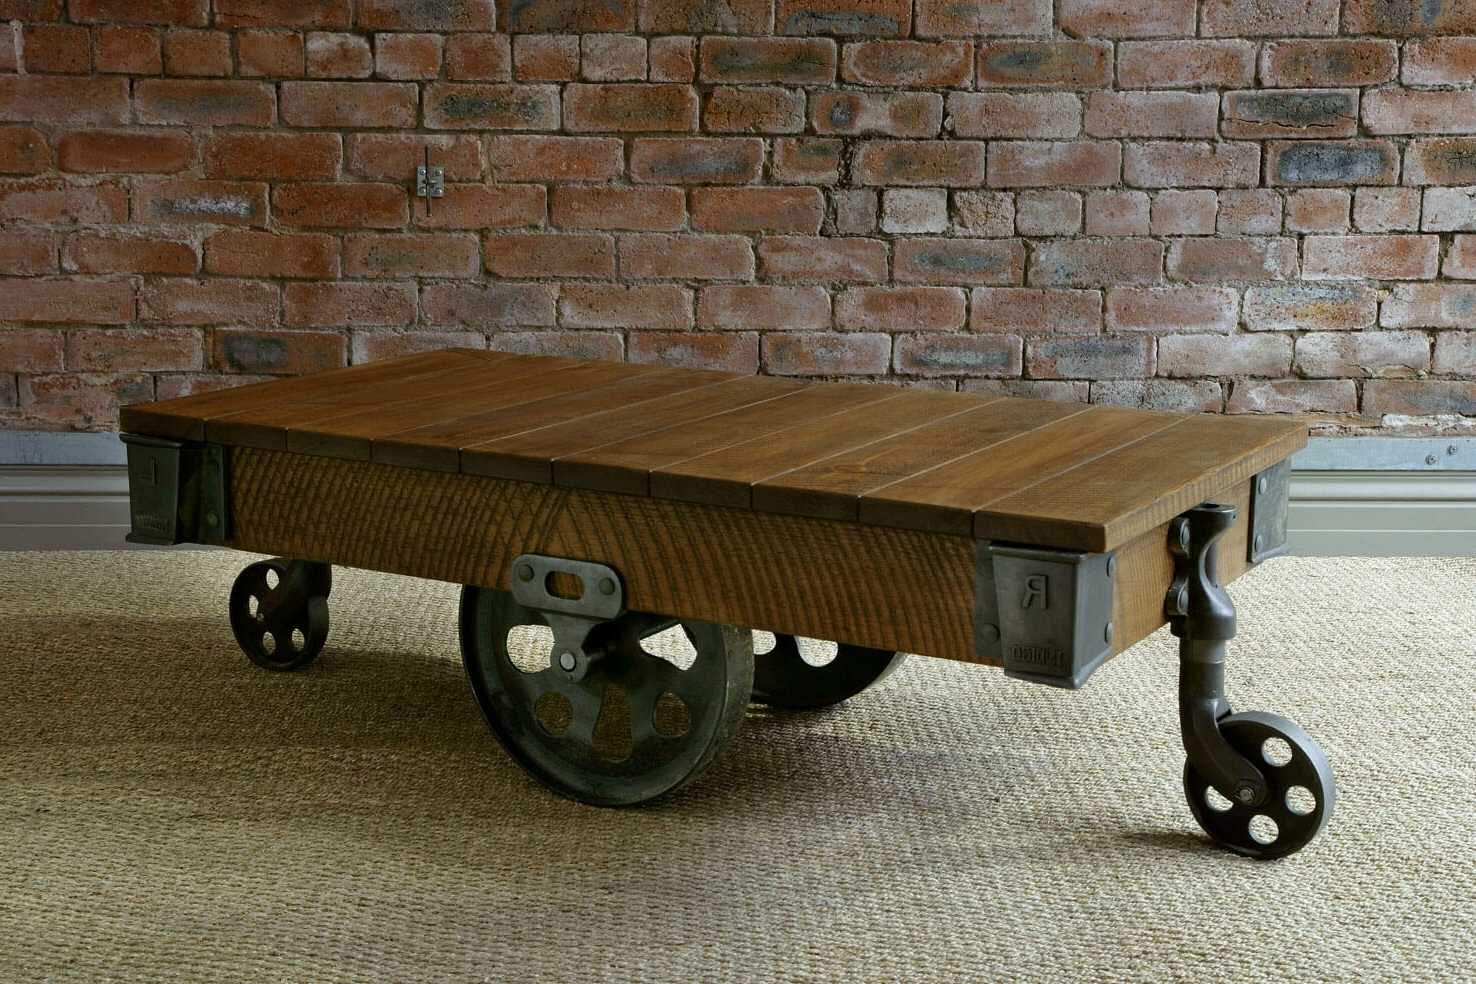 Rustic Wood Coffee Tables Handmade From Solid Oak Planks (View 18 of 20)